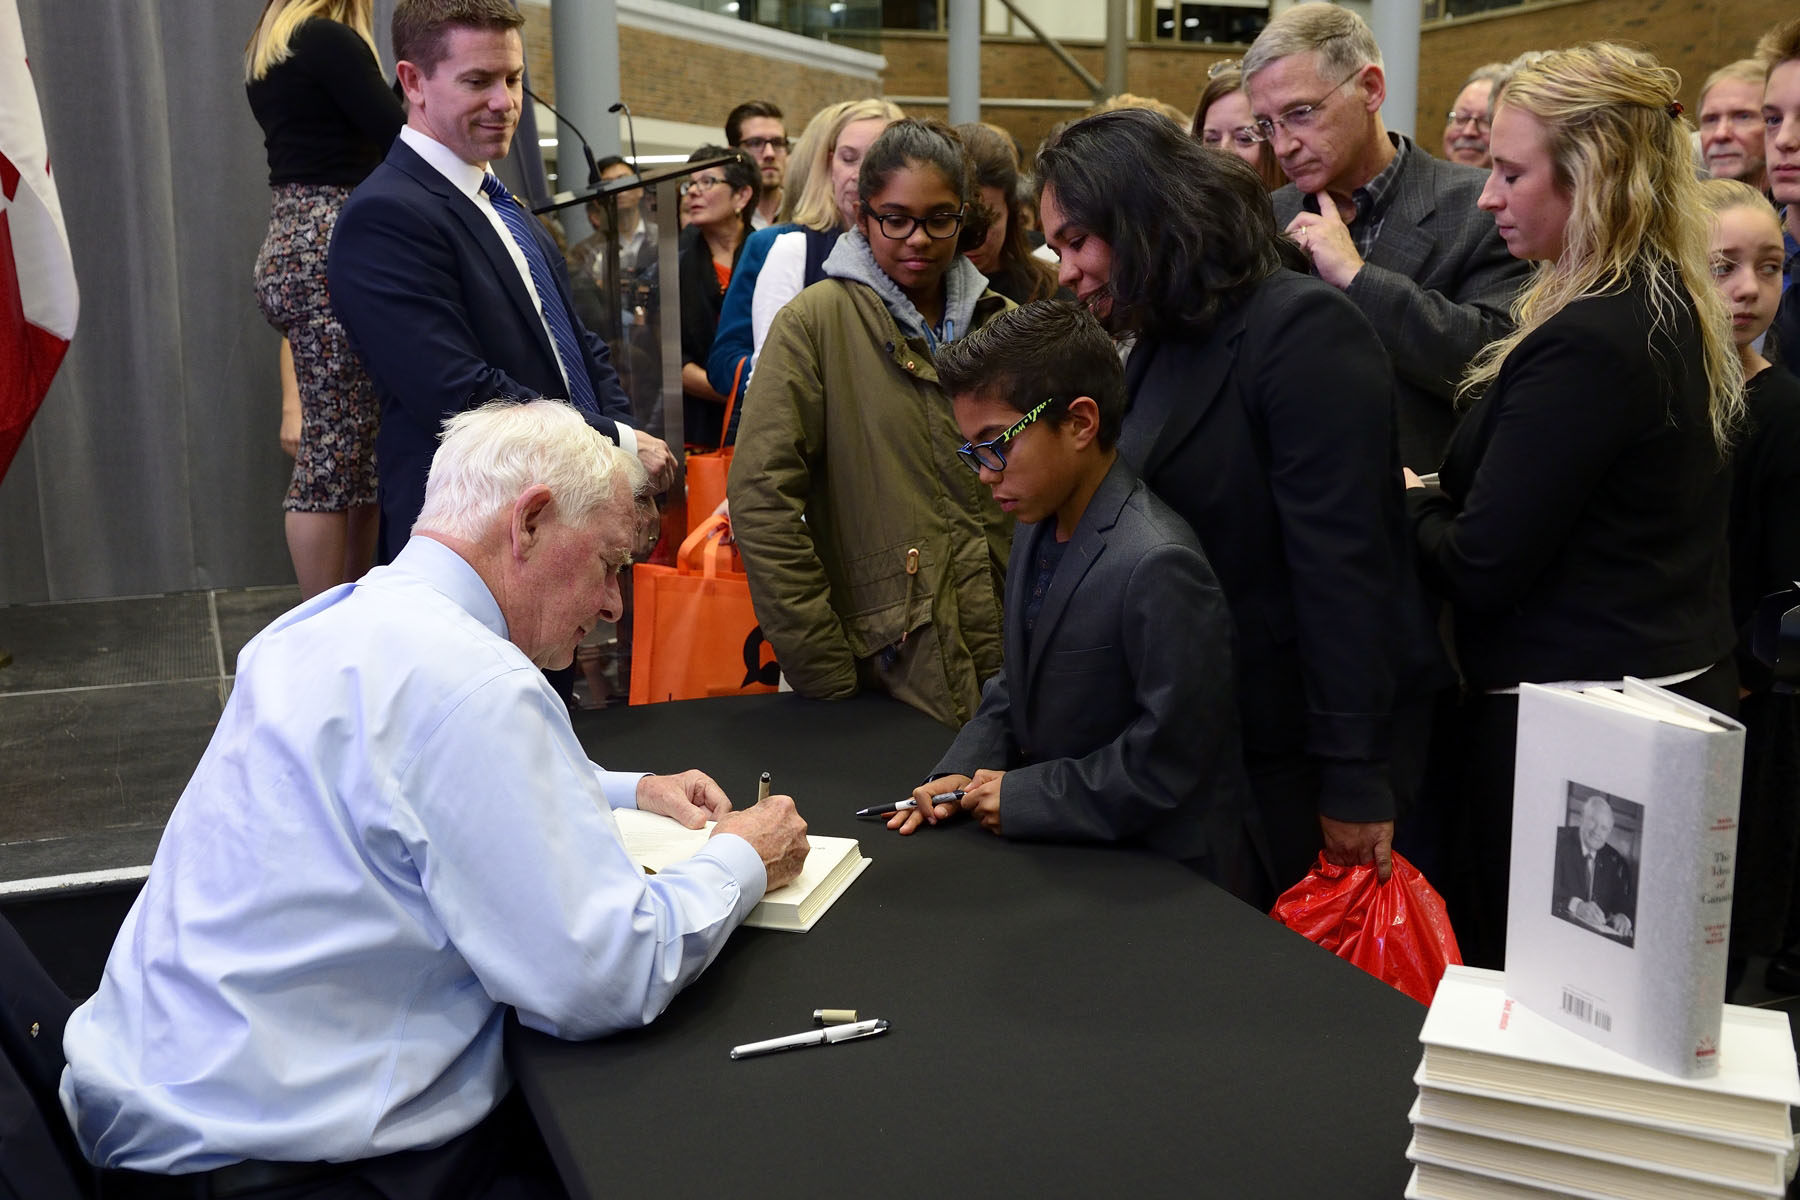 Afterwards, His Excellency participated in a book-signing session.